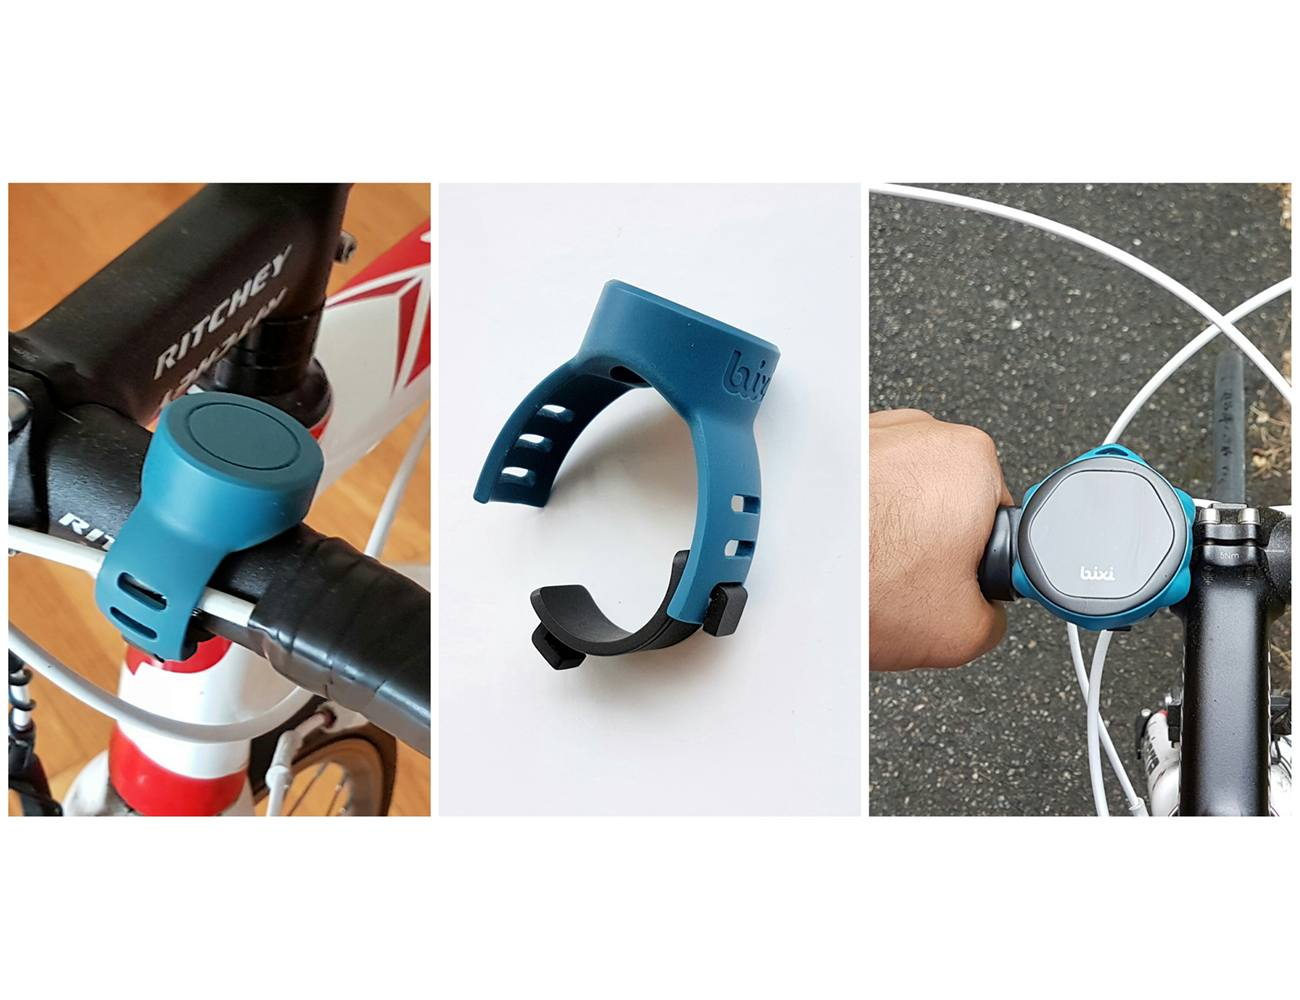 Bixi – Control Any Smart Device by Simply Waving Your Hand!